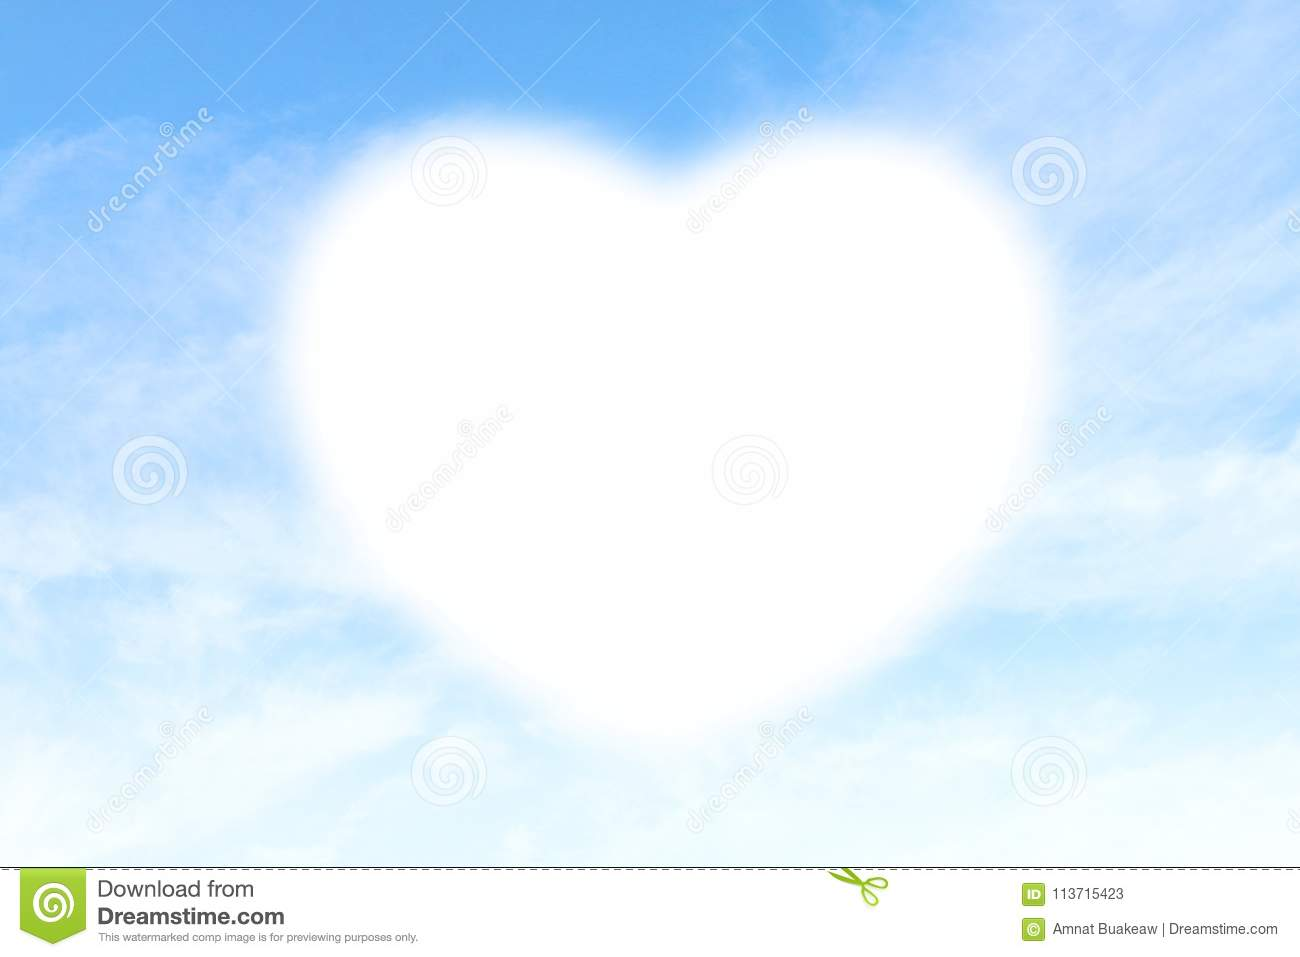 Clouds Heart shape white soft on Sky Blue background, Heart-shaped on sky for design valentine greeting cards copy space message w